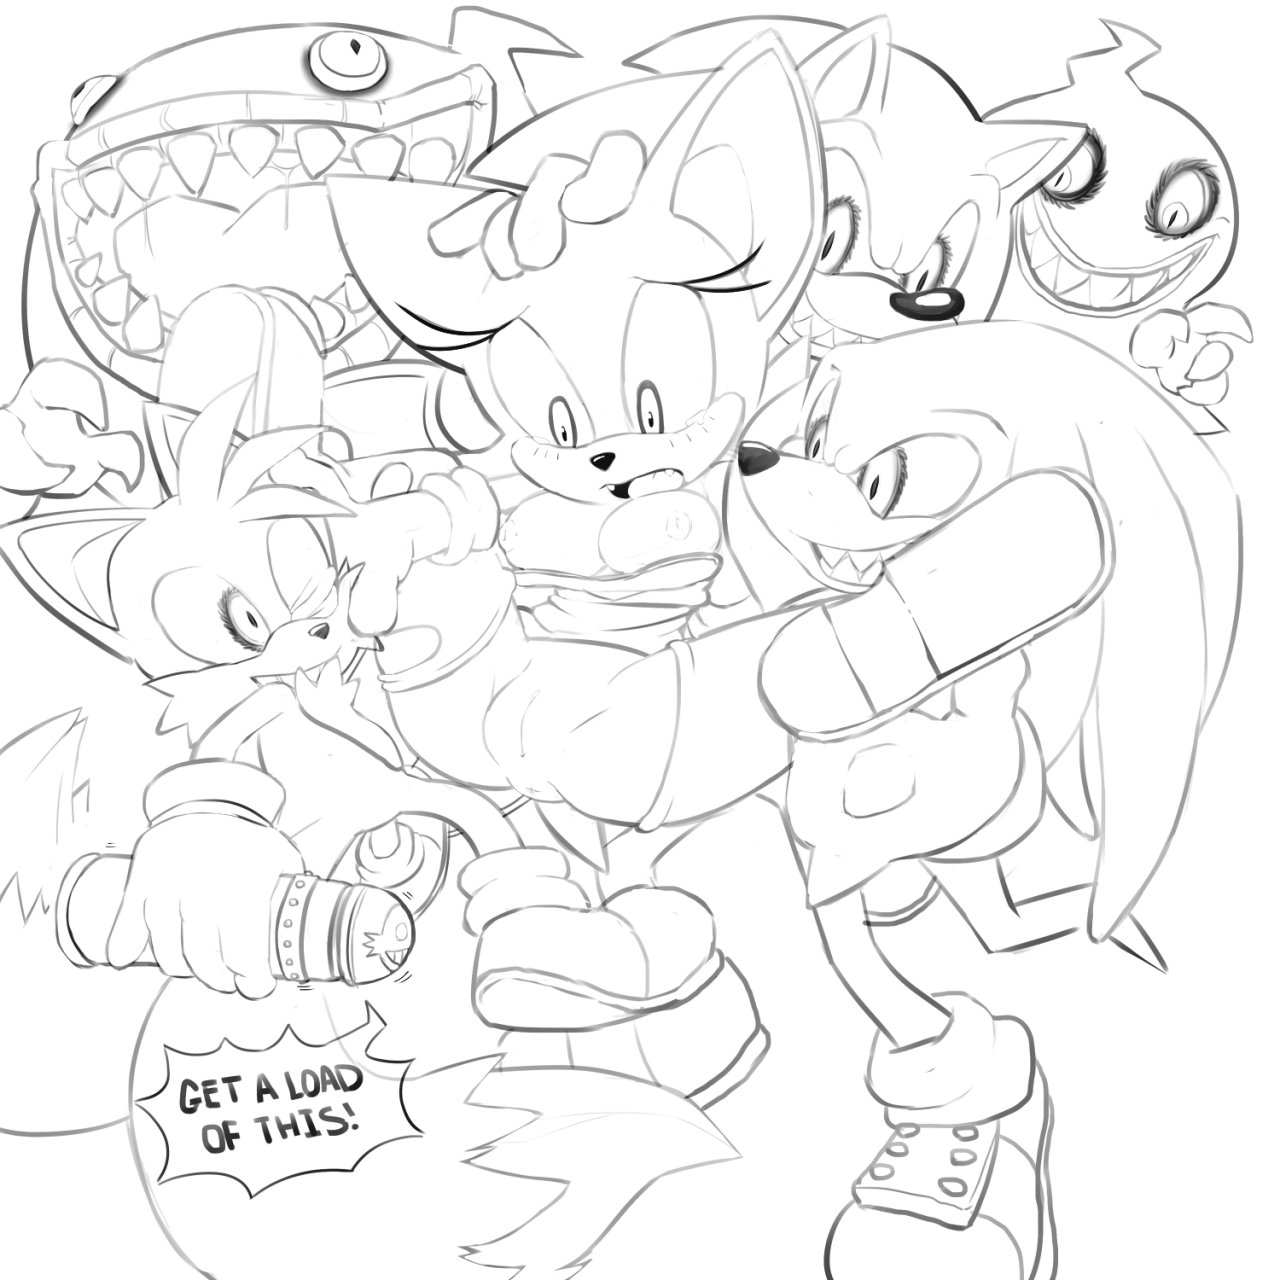 girl tails sonic from is a How old is maya fey